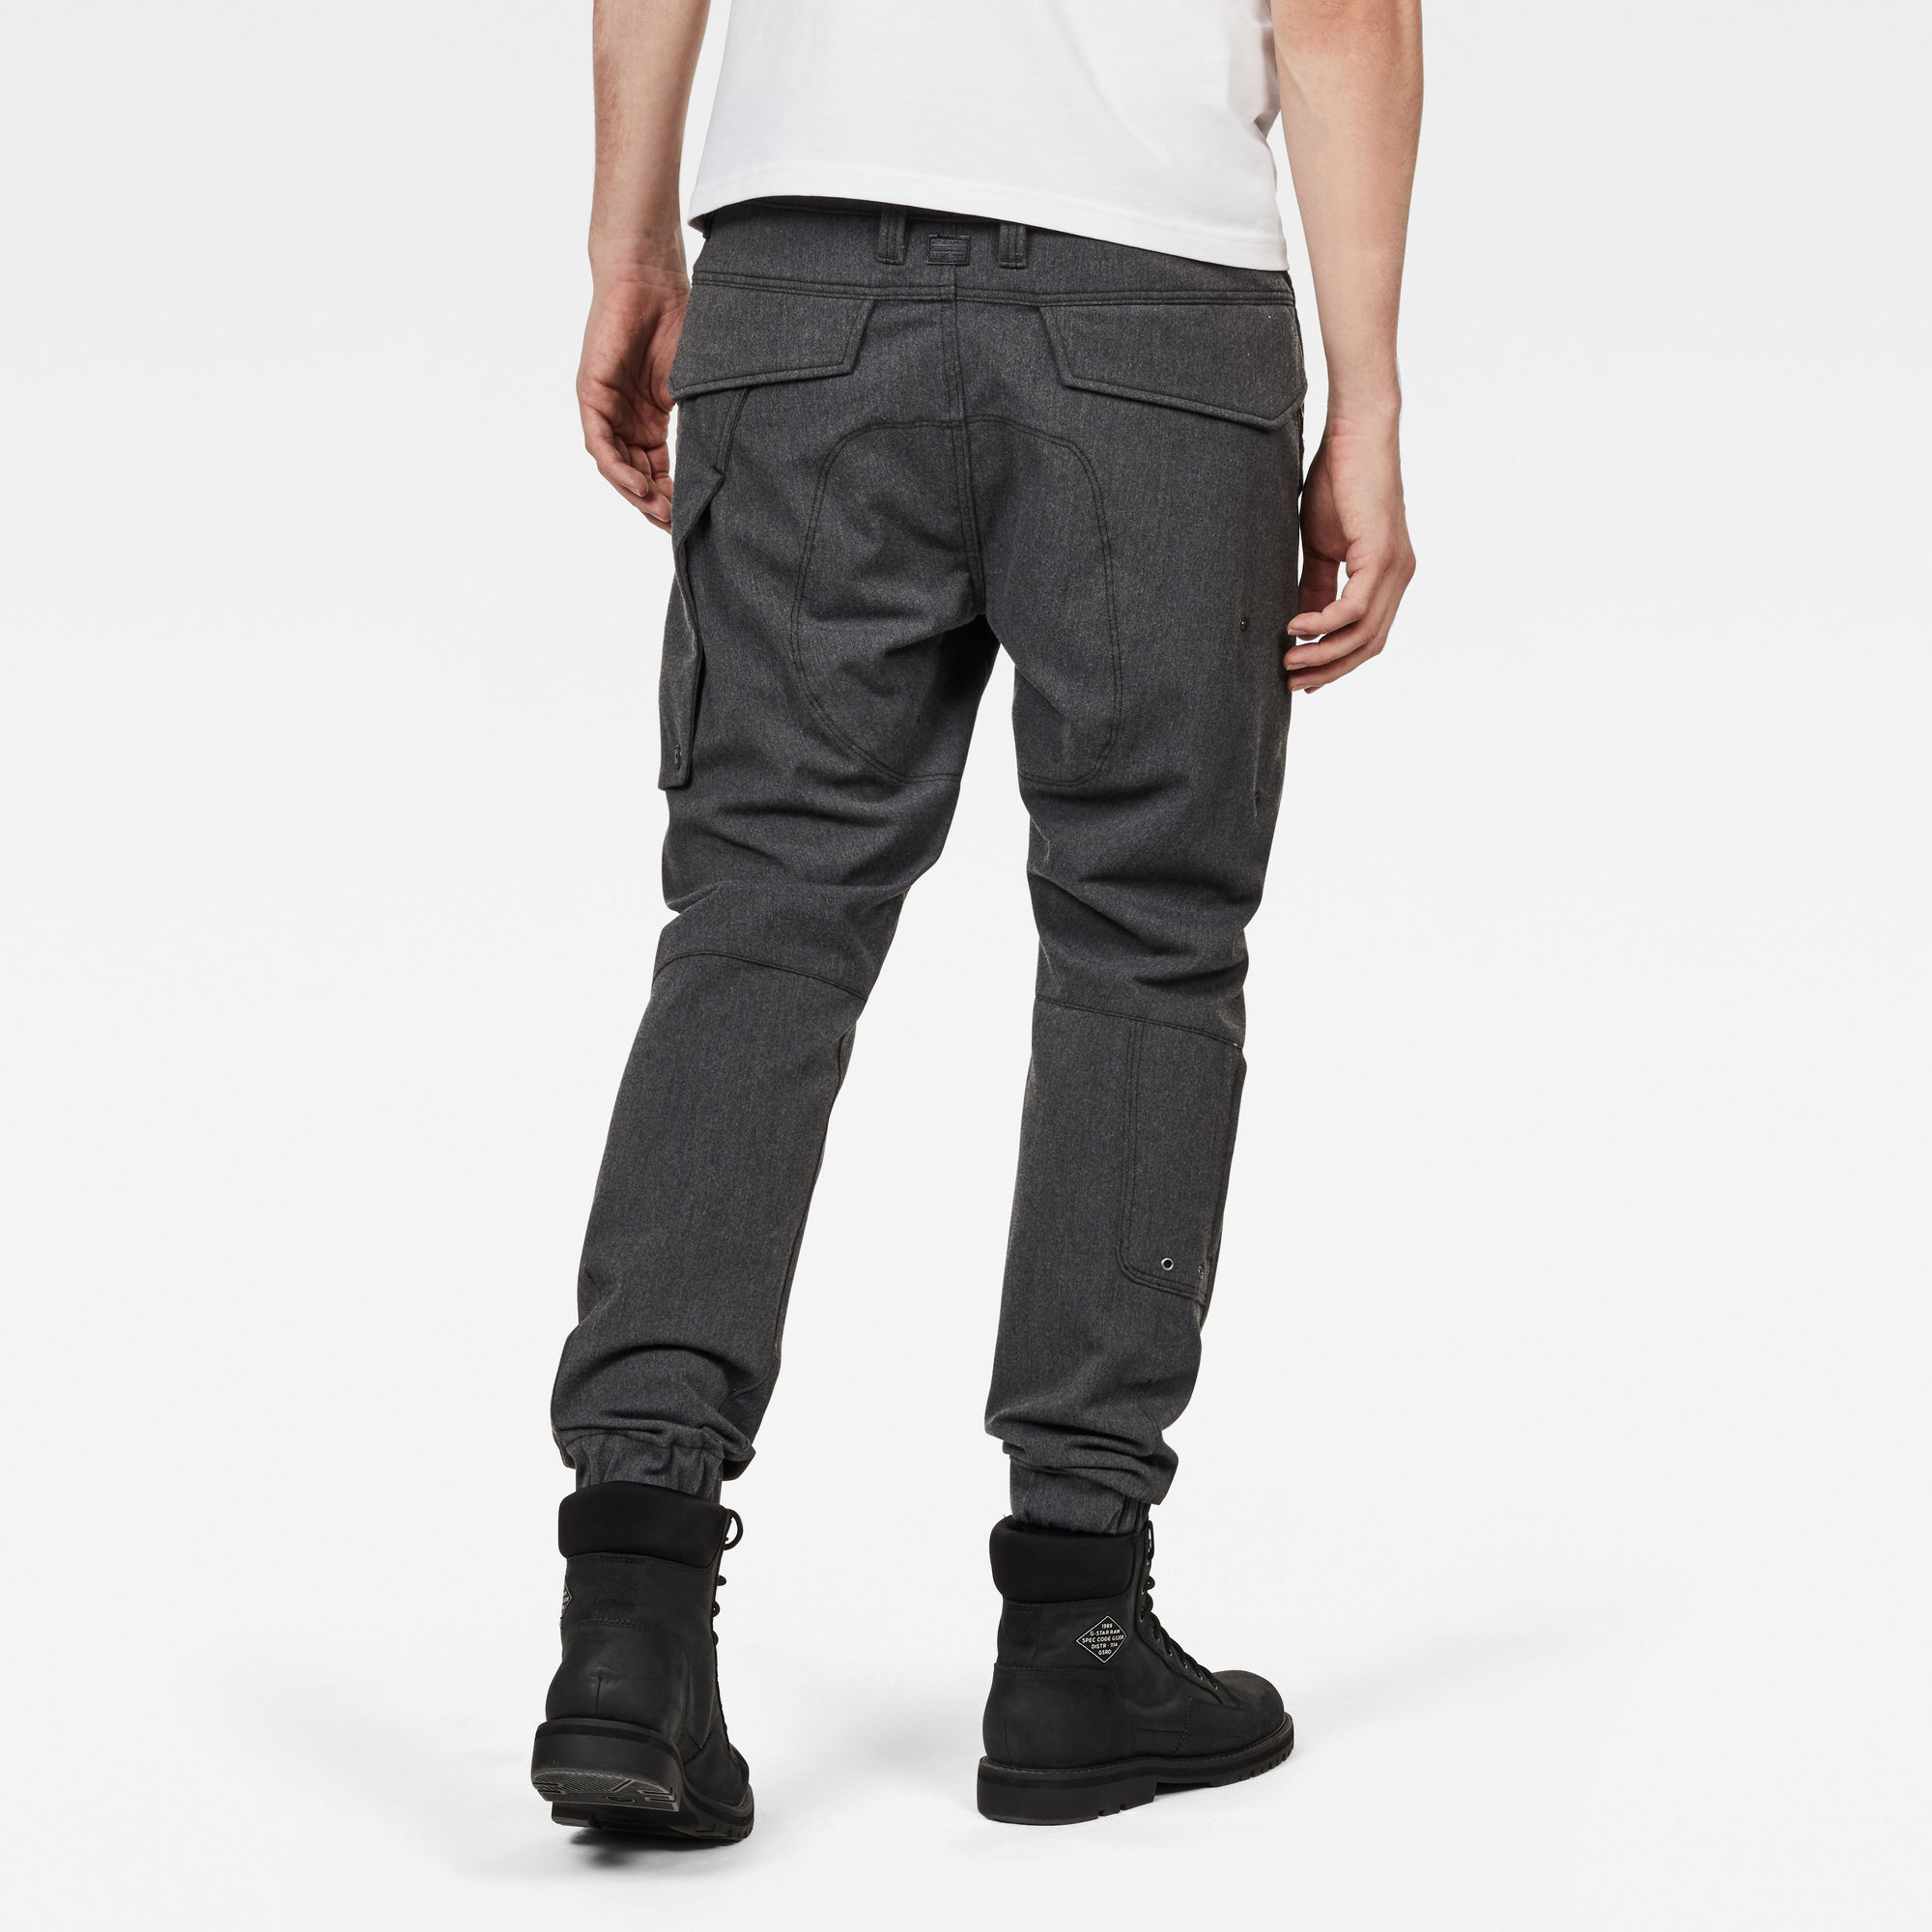 Citishield 3D Cargo Slim Tapered Cuffed Jeans